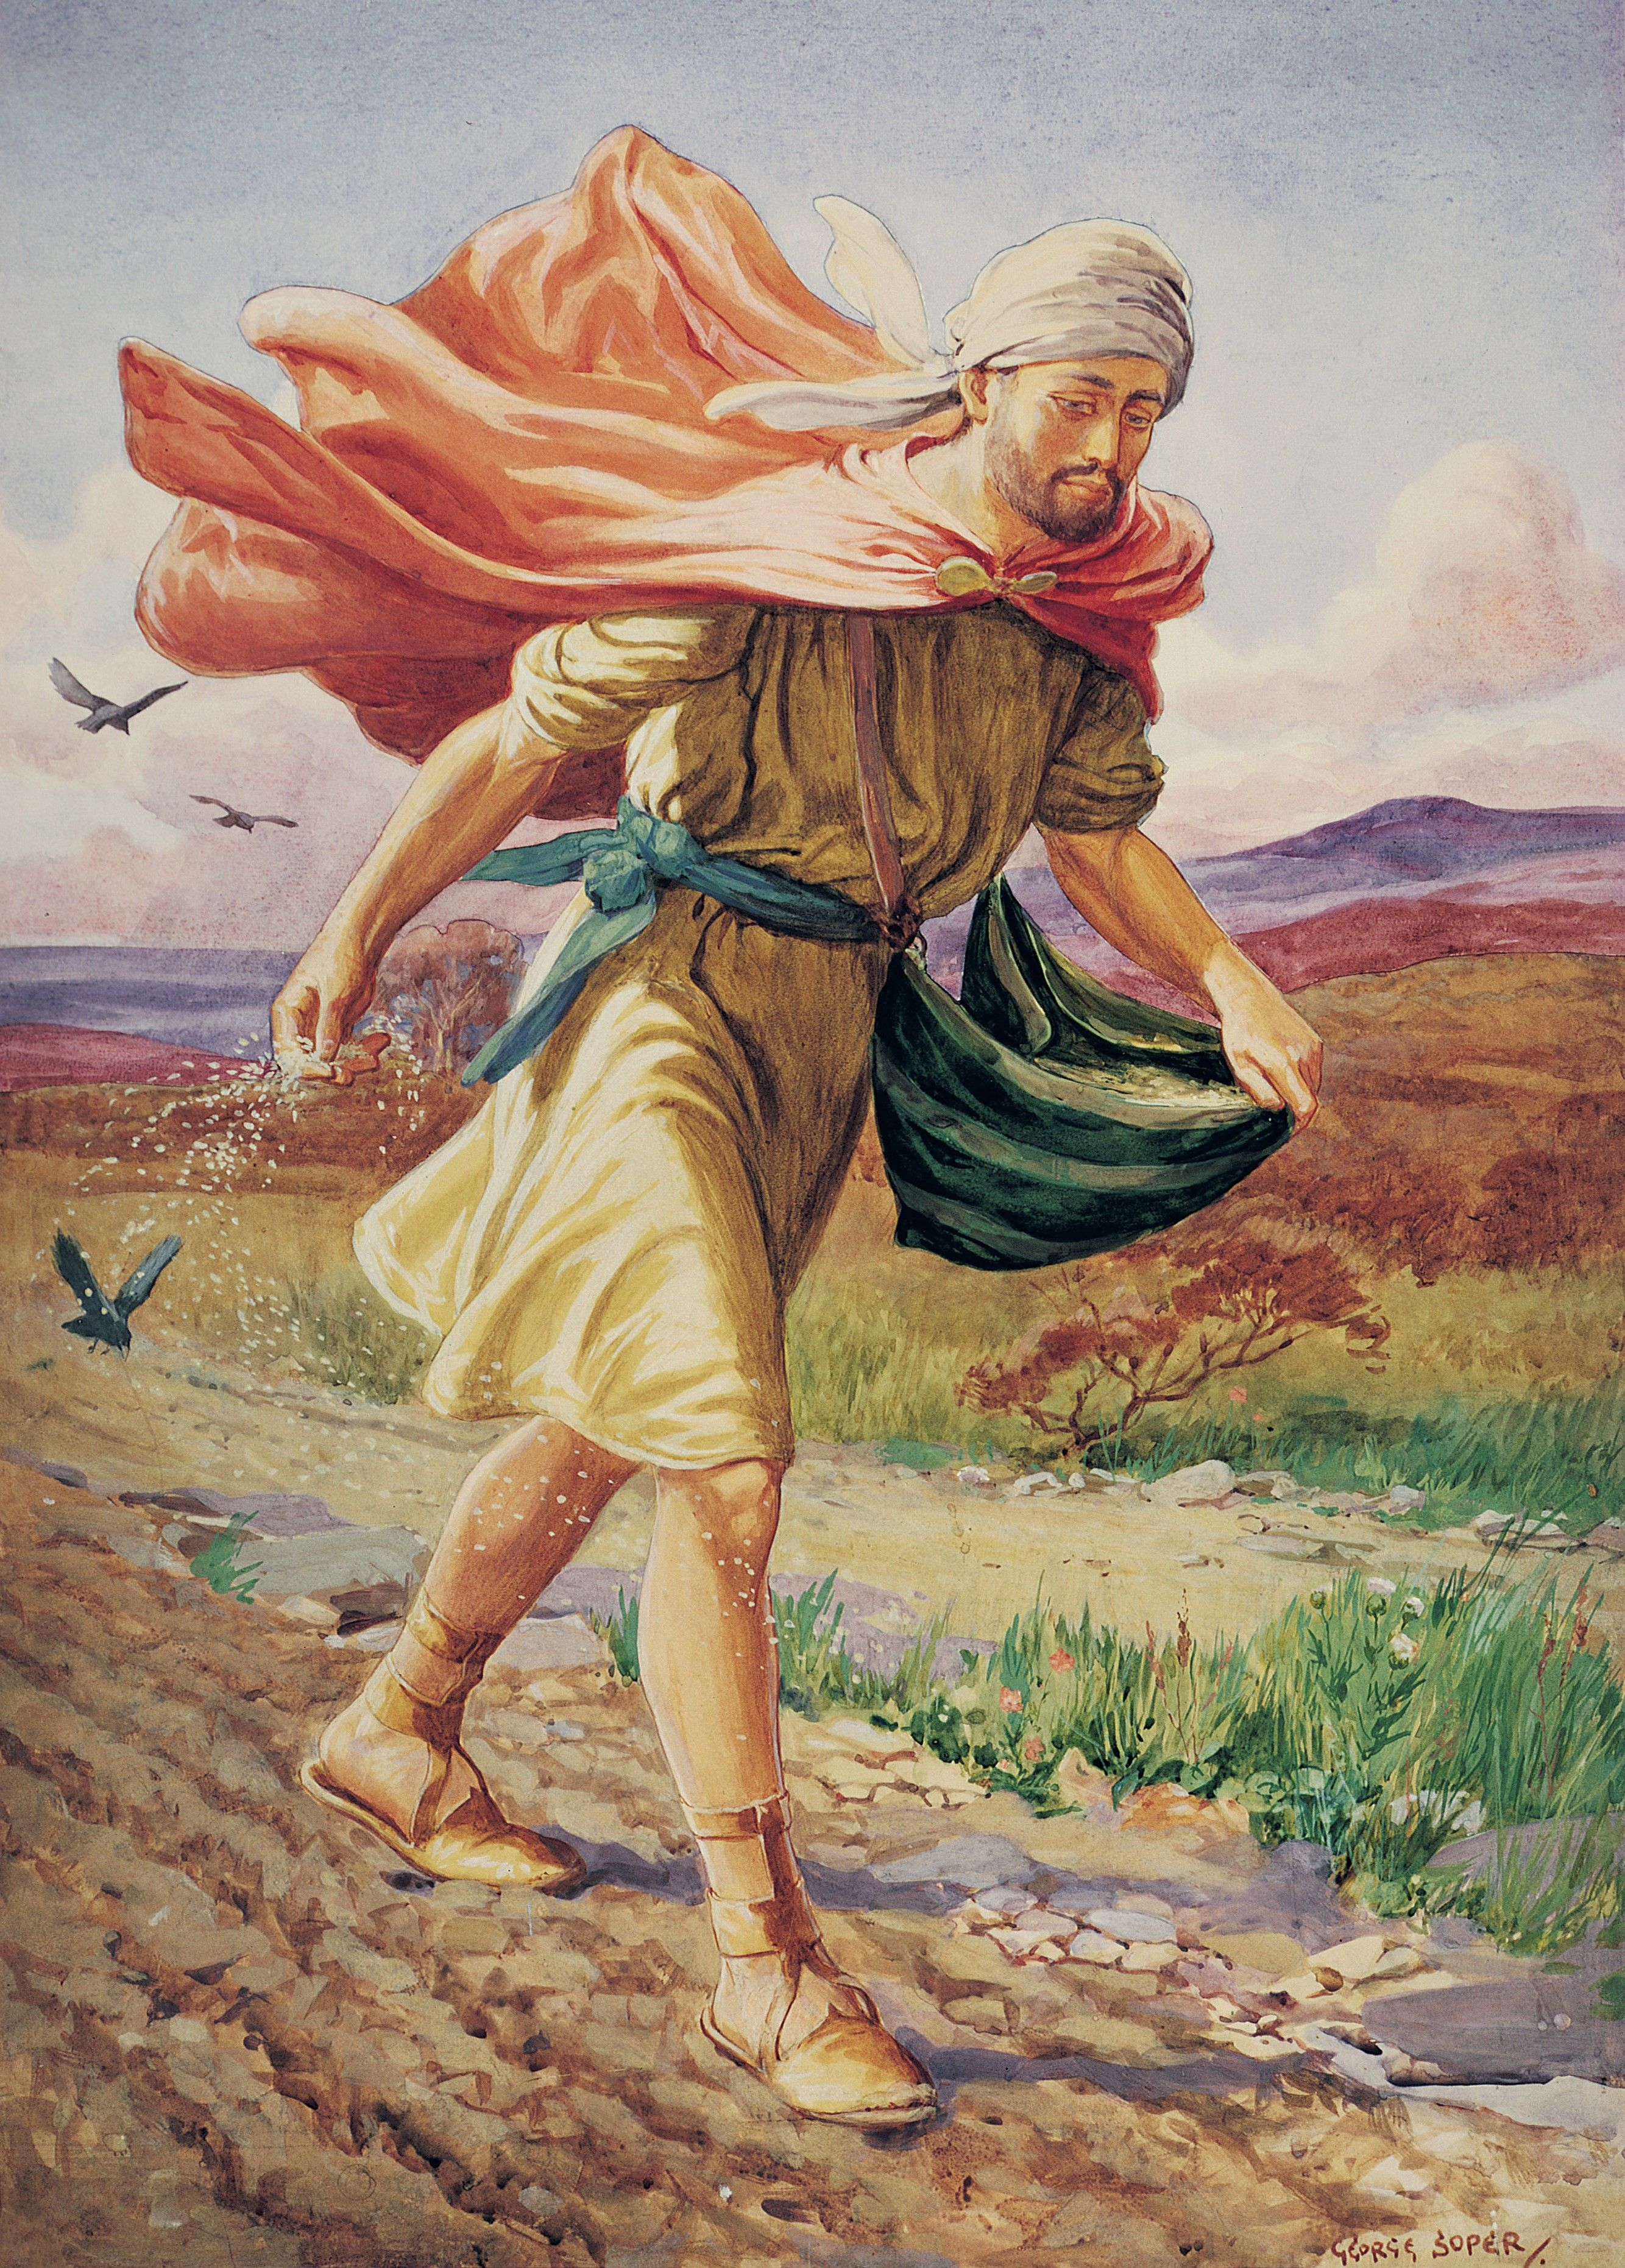 The Sower, by George Soper